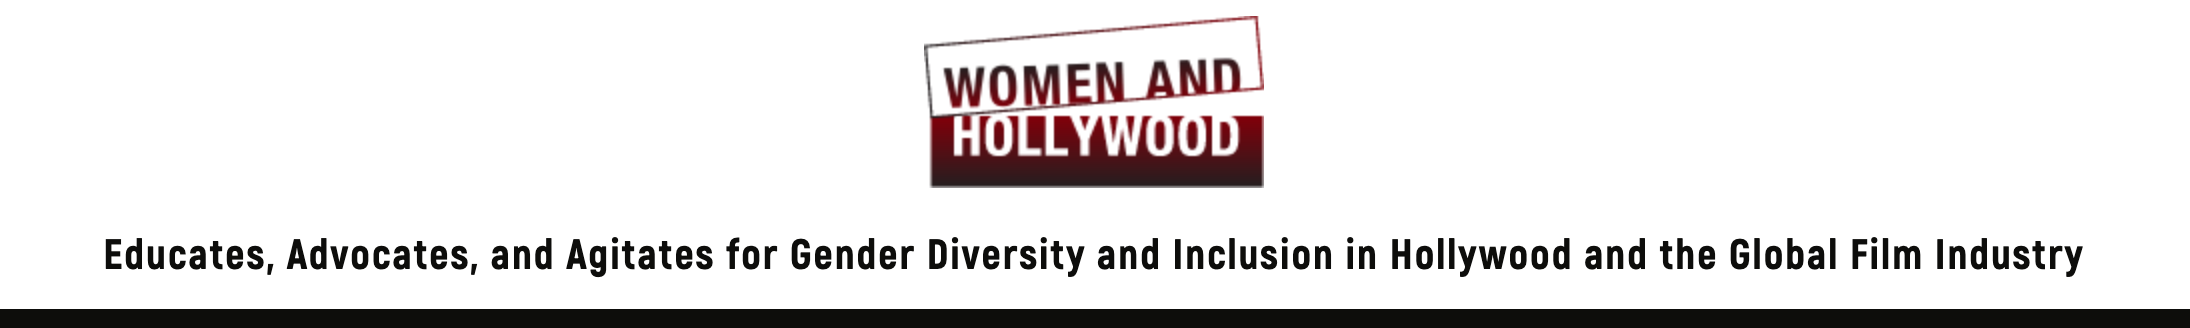 Women and Hollywood.png